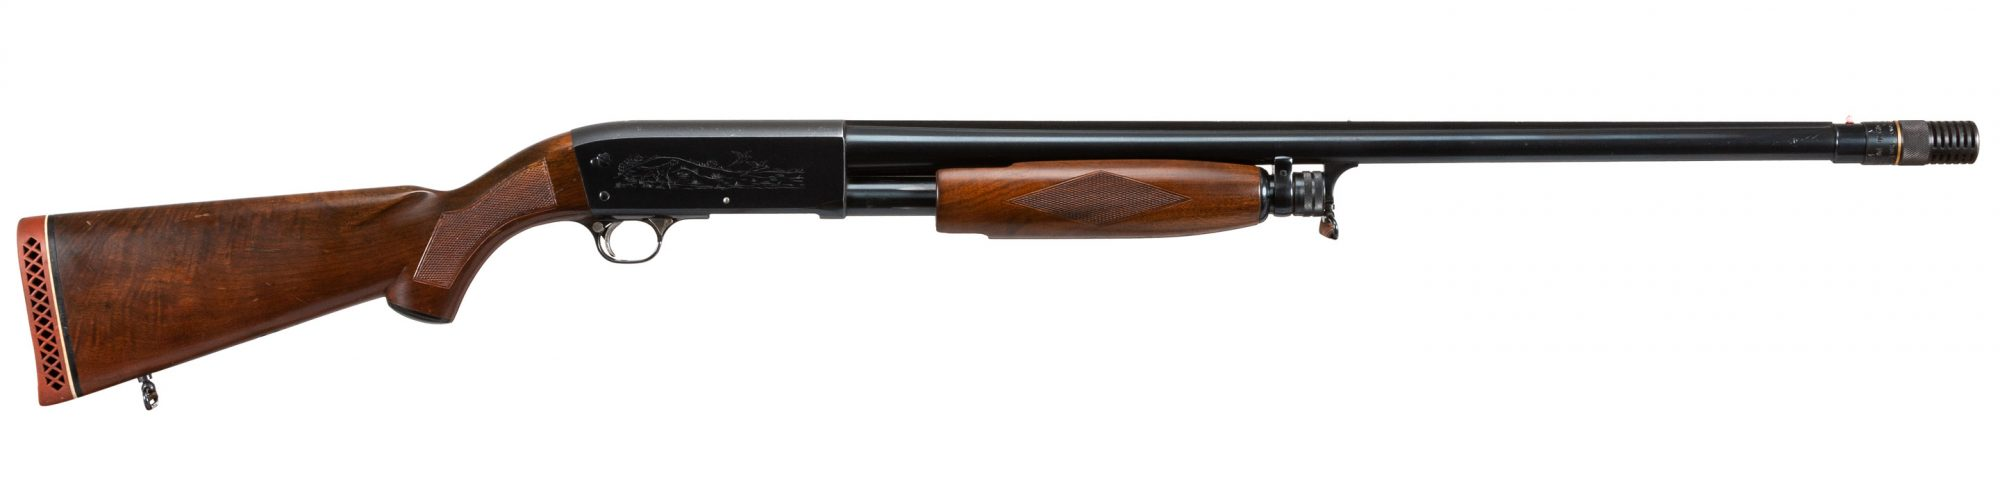 Photo of a pre-owned Ithaca 37R Deluxe Featherweight 12 gauge shotgun, for sale by Turnbull Restoration of Bloomfield, NY